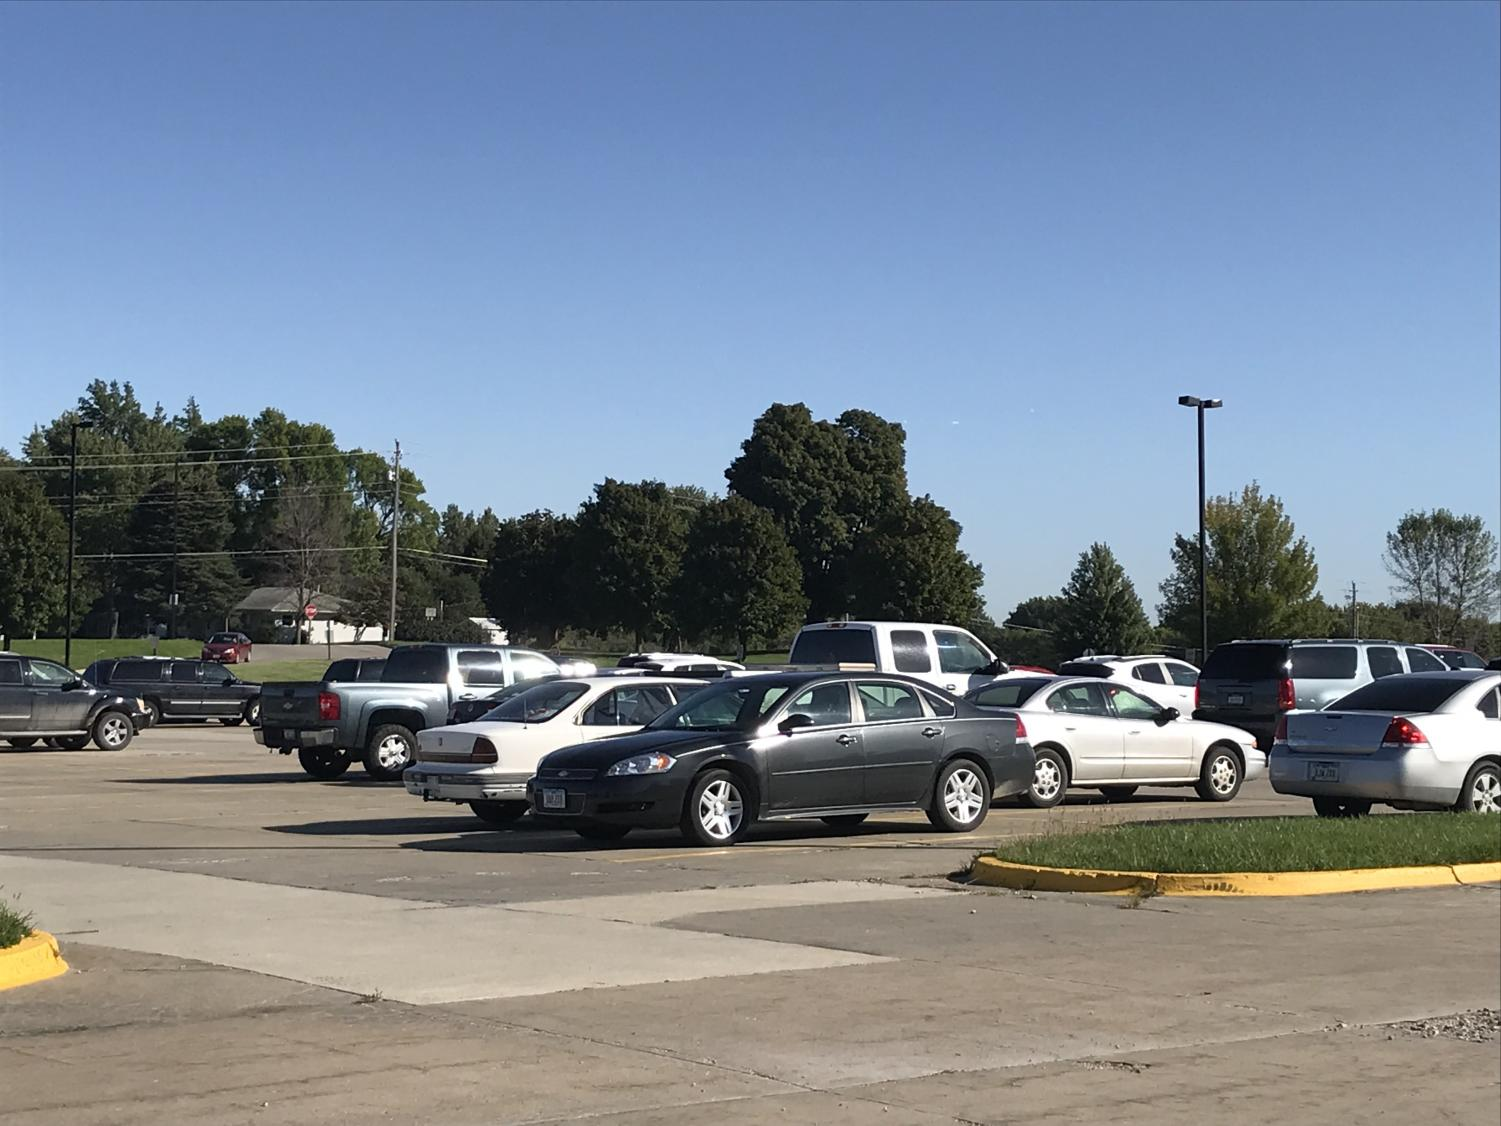 The AHS parking lot houses many vehicles during the school day.